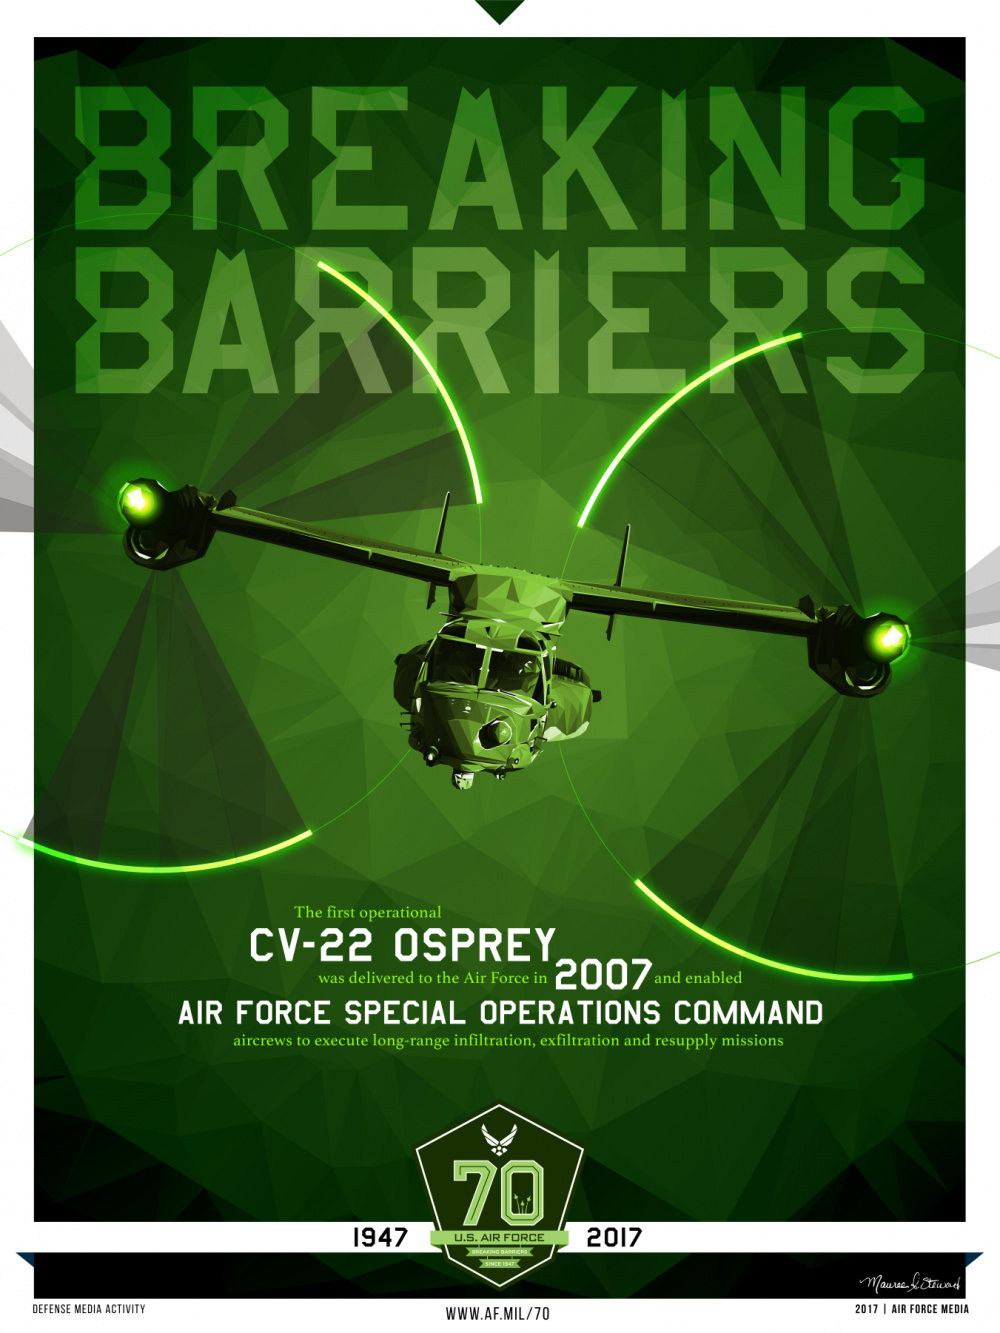 Breaking Barriers-the CV-22 Osprey (7 of 8)